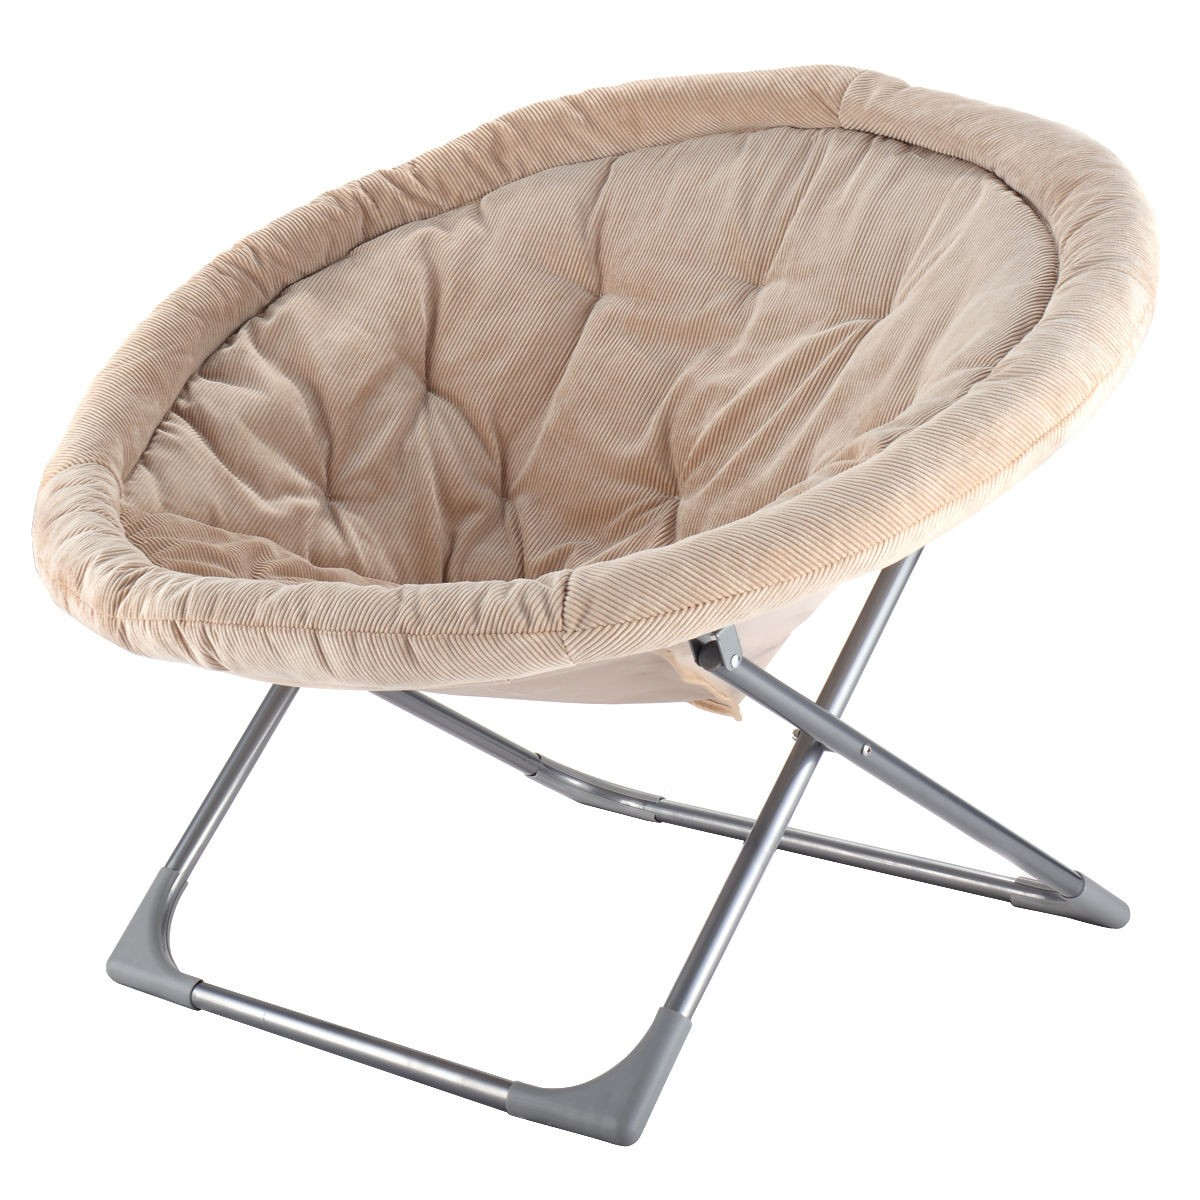 oversized large folding saucer moon chair corduroy round seat living room. Black Bedroom Furniture Sets. Home Design Ideas